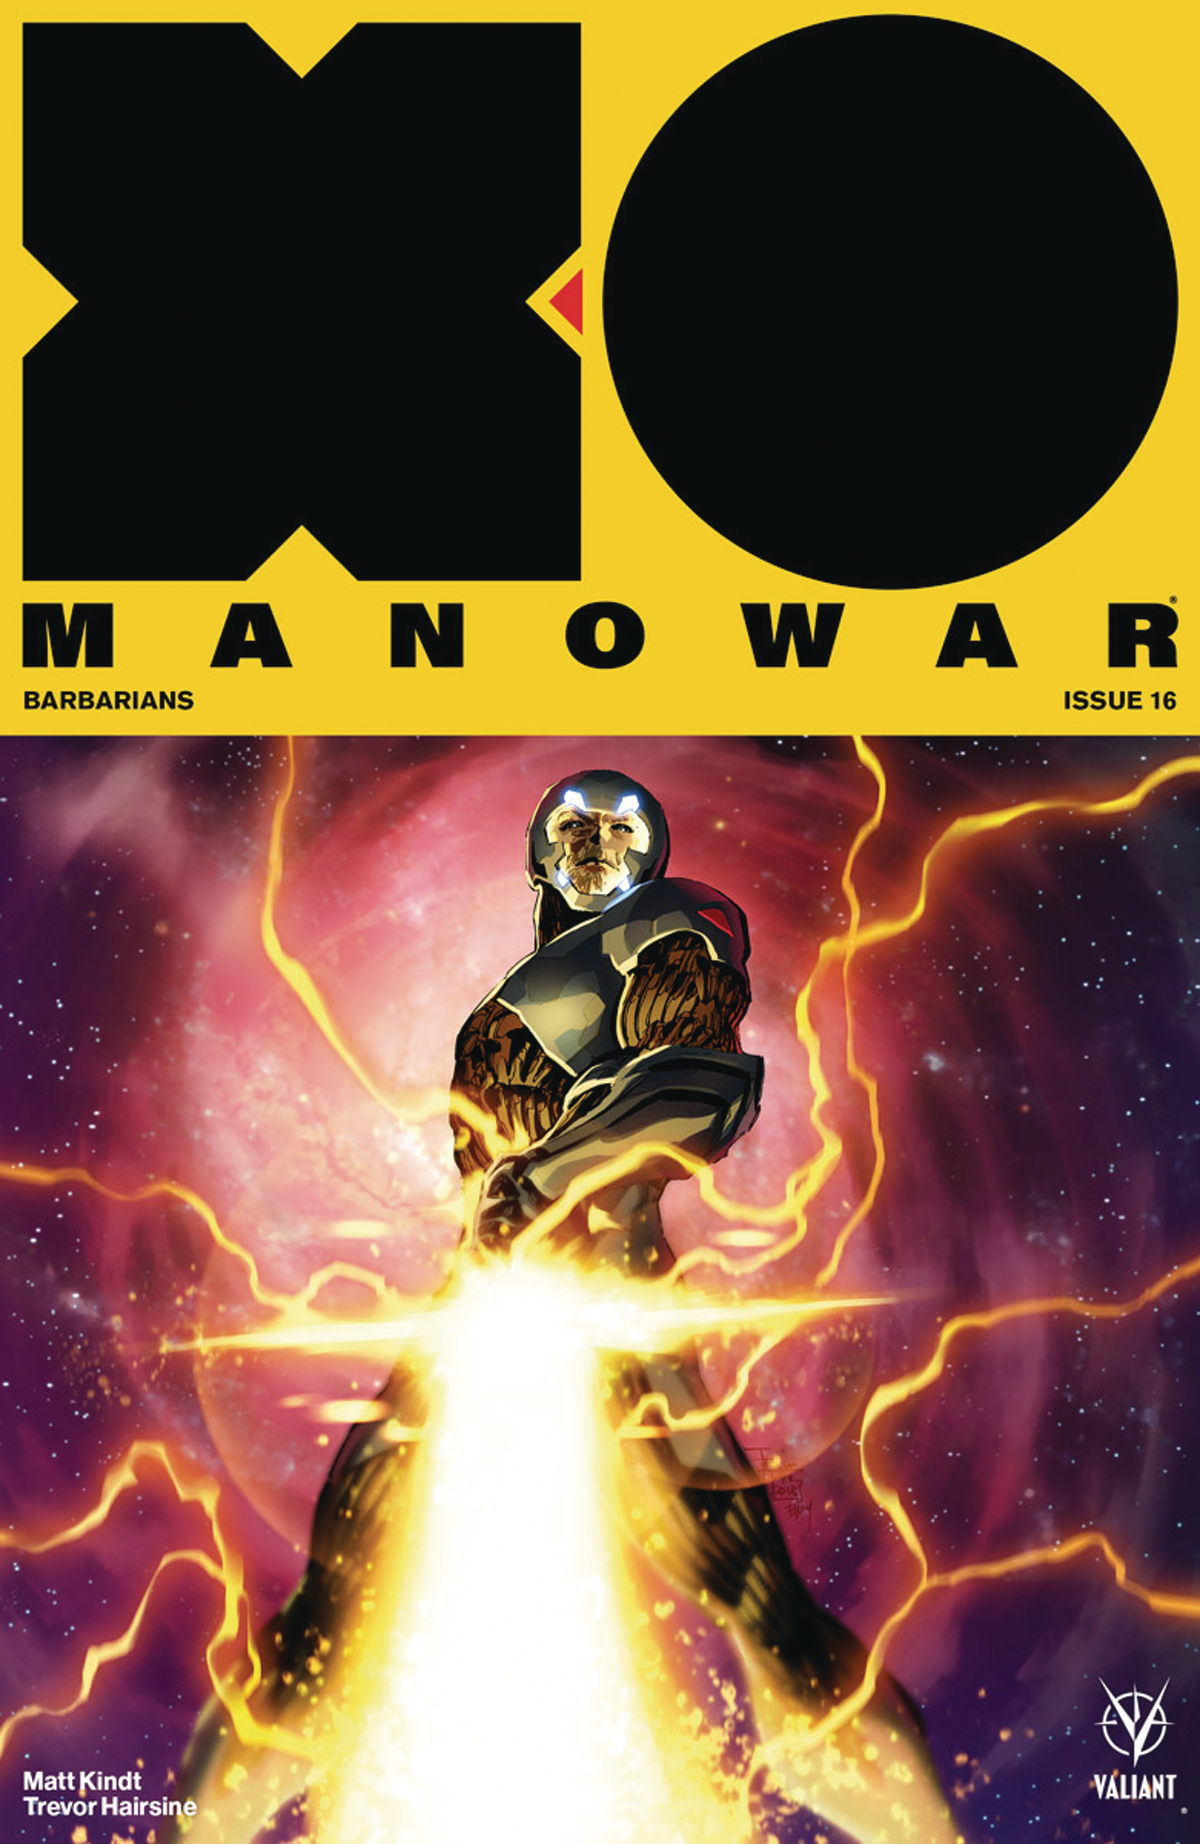 X-O MANOWAR (2017) #16 CVR D 50 COPY INCV ICON TAN